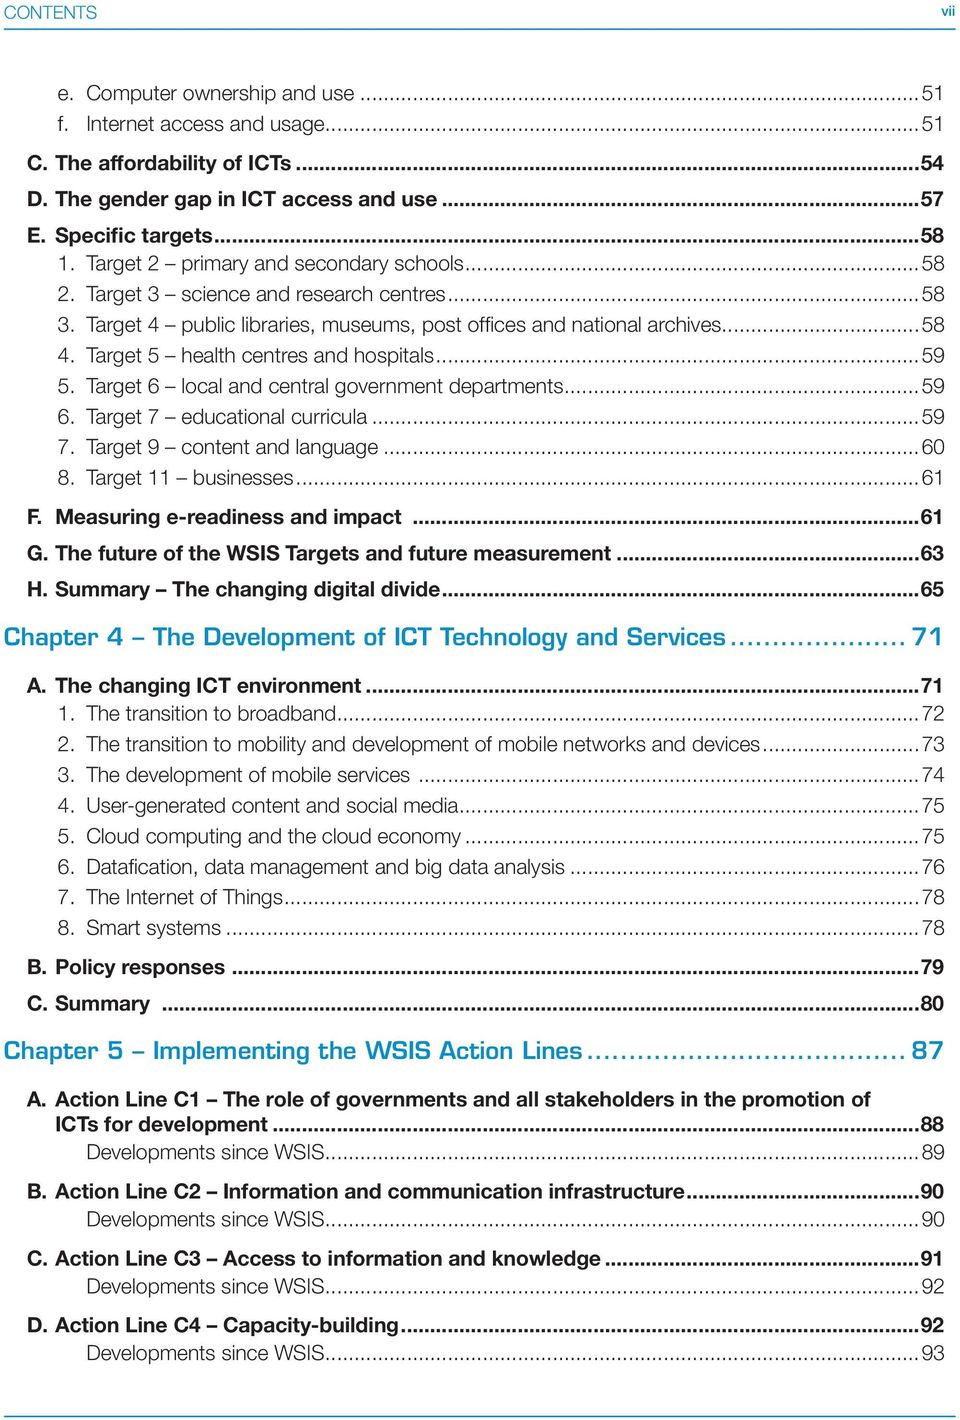 Measuring e-readiness and impact...61 G. The future of the WSIS Targets and future measurement...63 H. Summary The changing digital divide...65 Chapter 4 The Development of ICT Technology and Services.